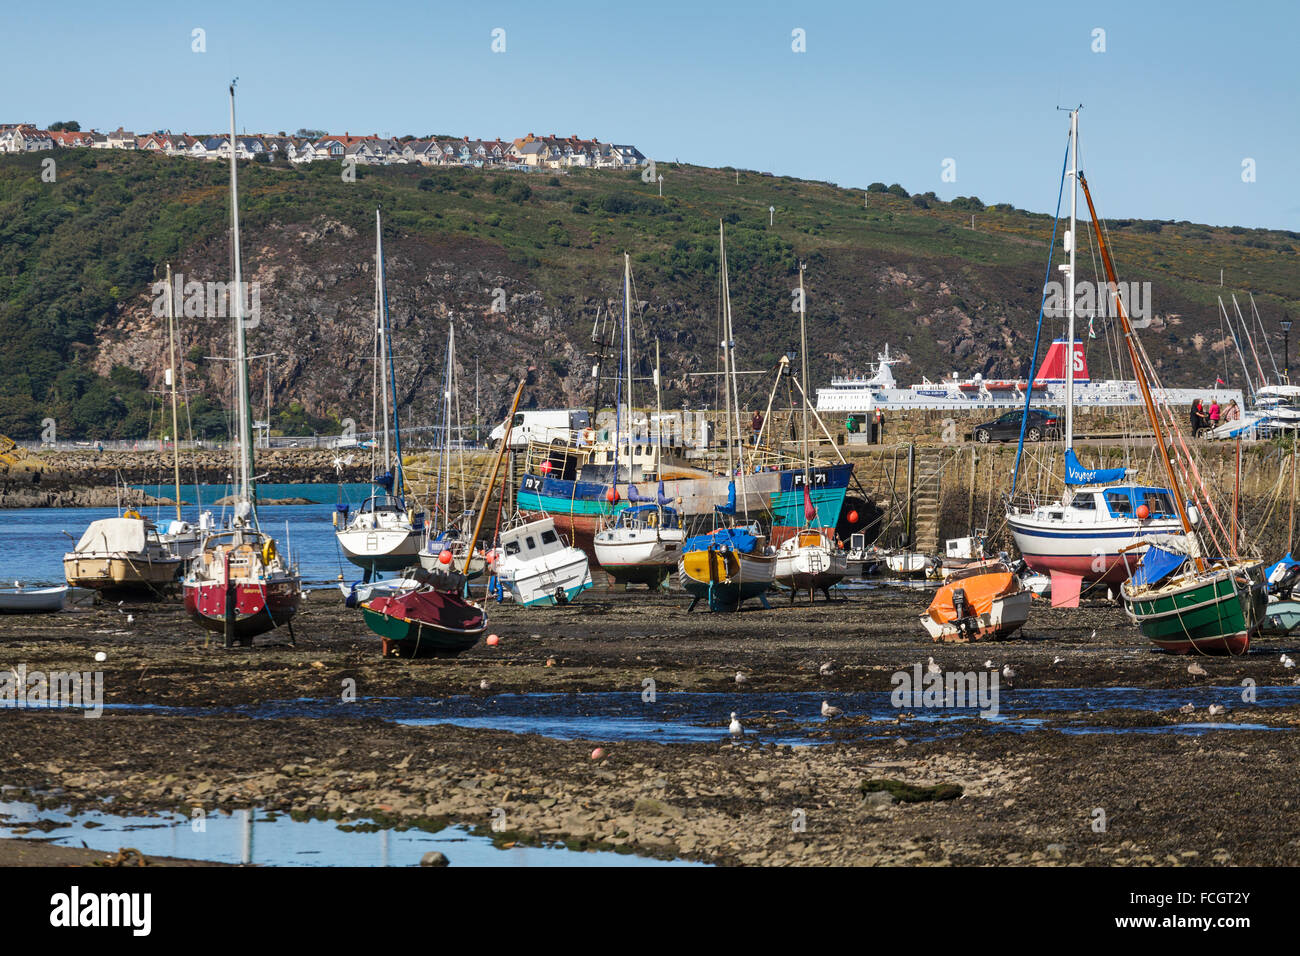 Lower Fishguard Harbour, Pembrokeshire, Wales Uk - Stock Image